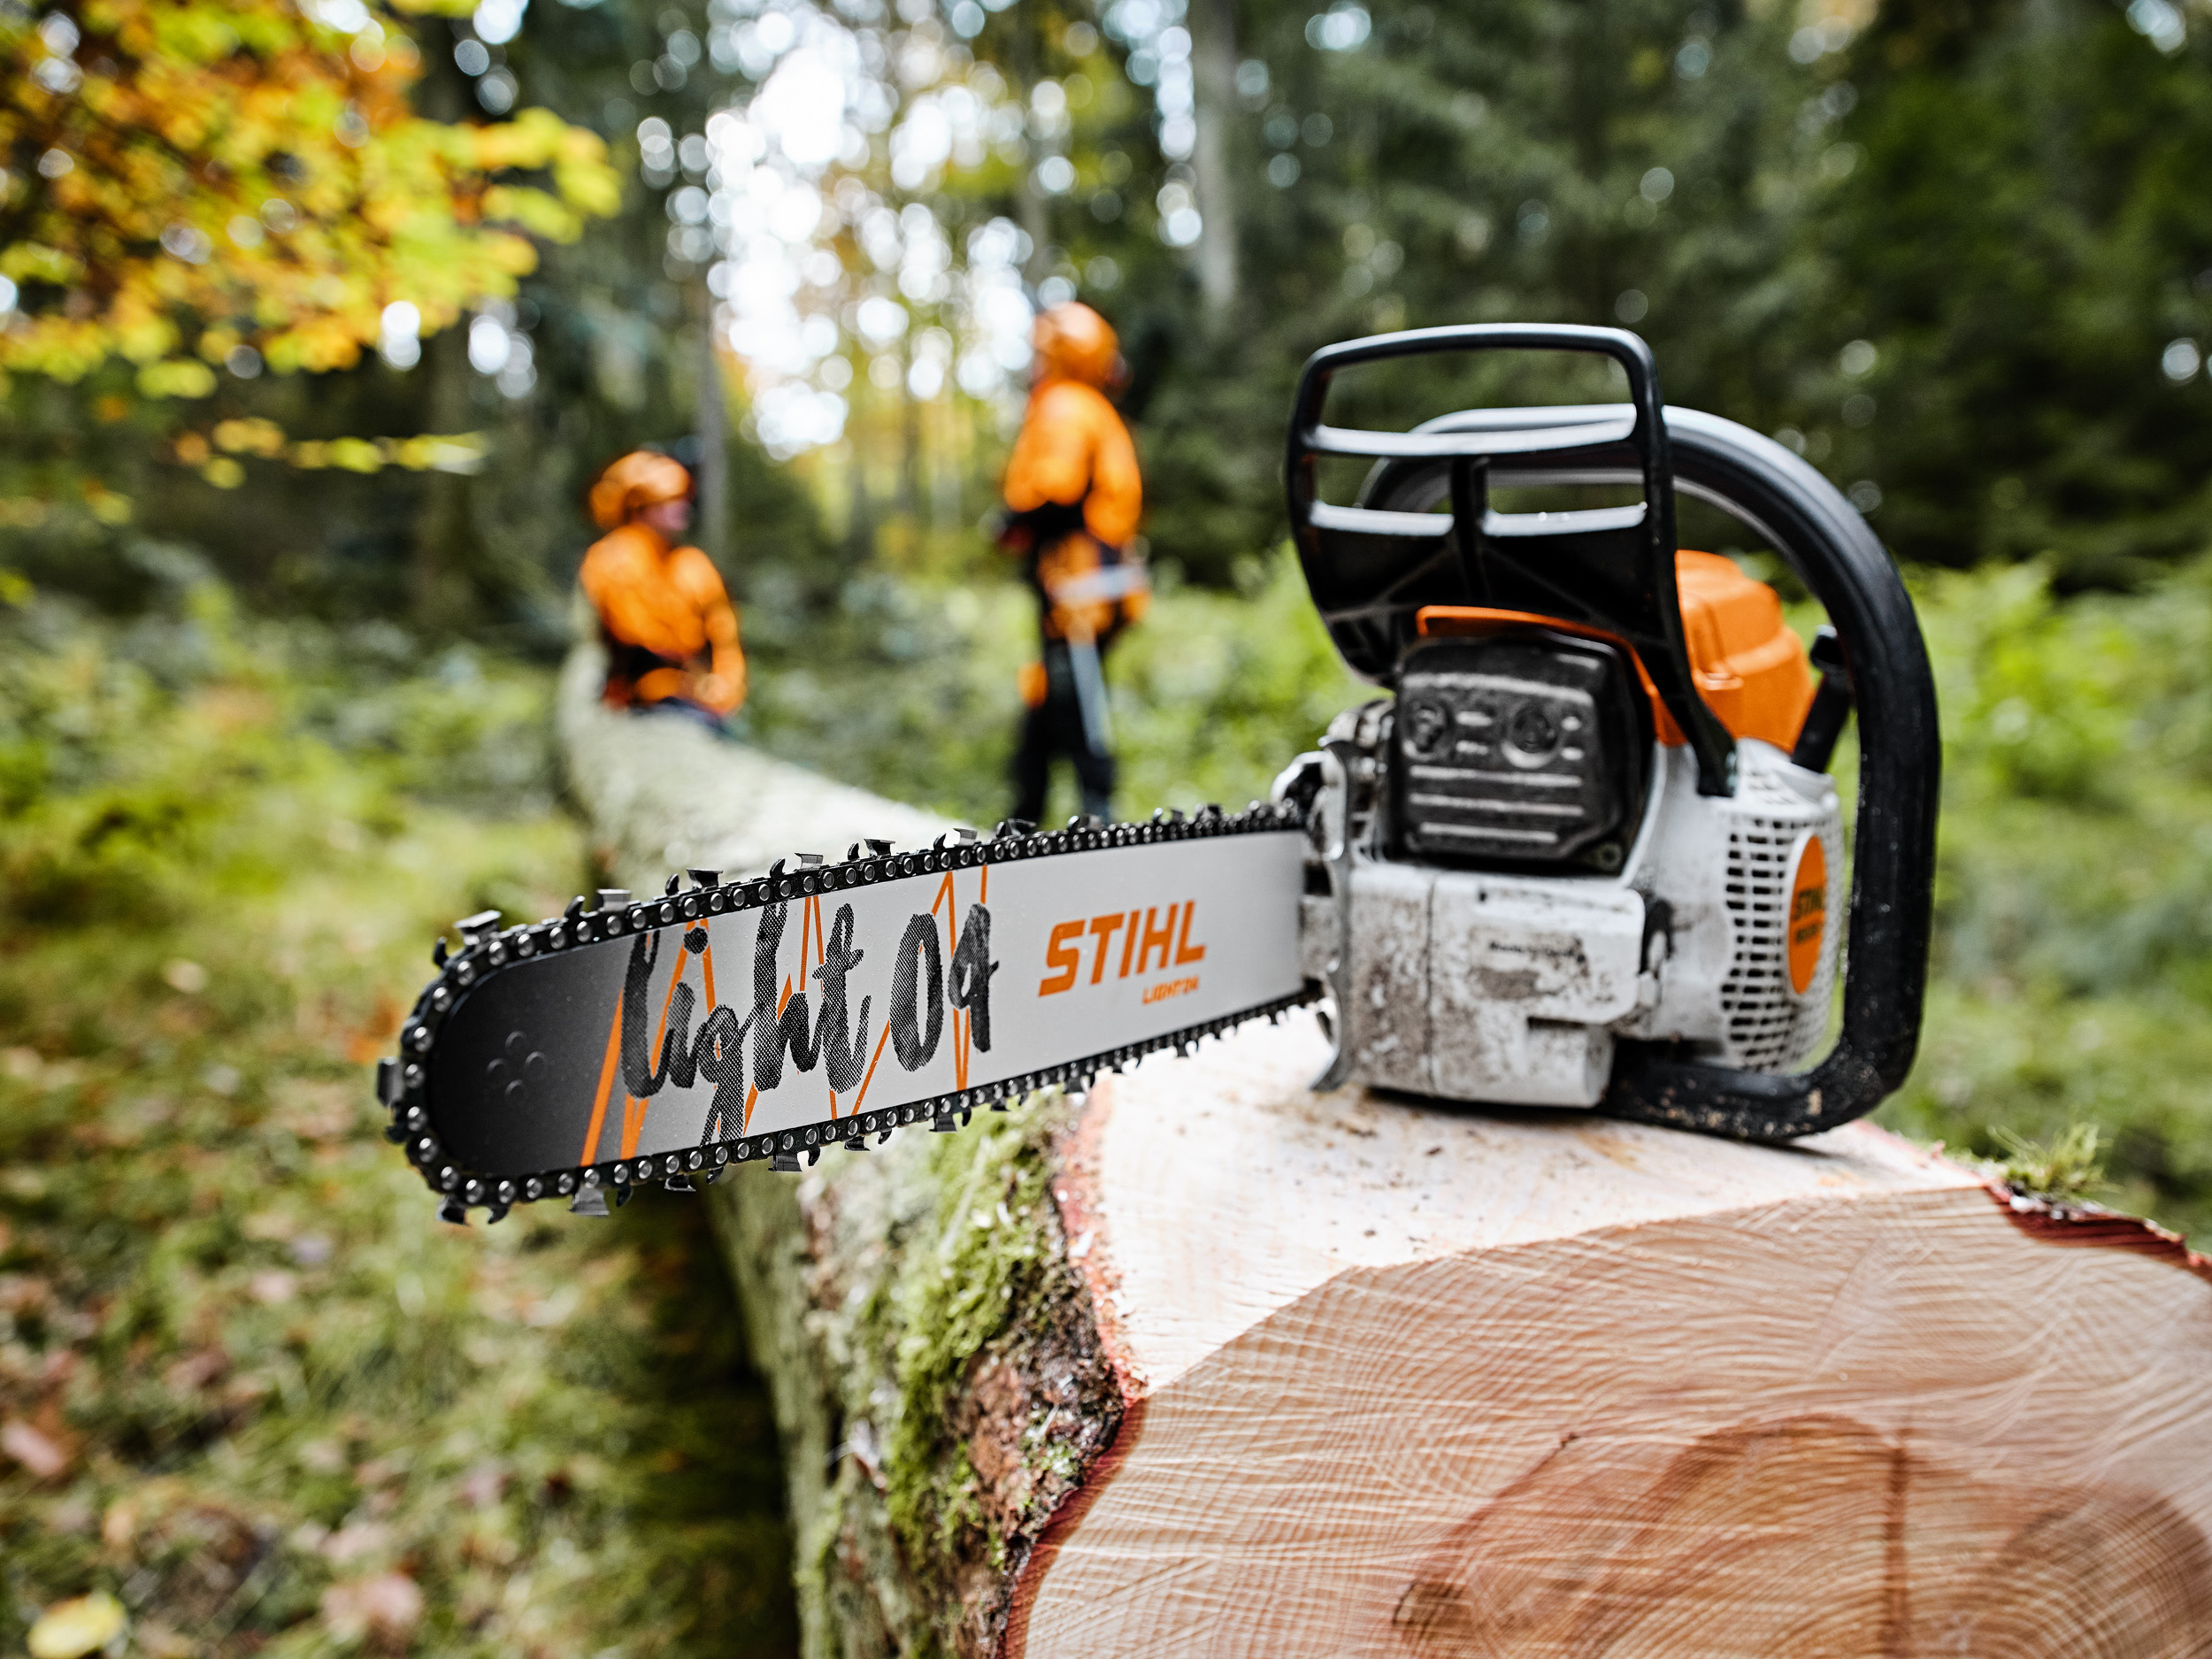 Saw chains upgrades from STIHL enhances cutting performance